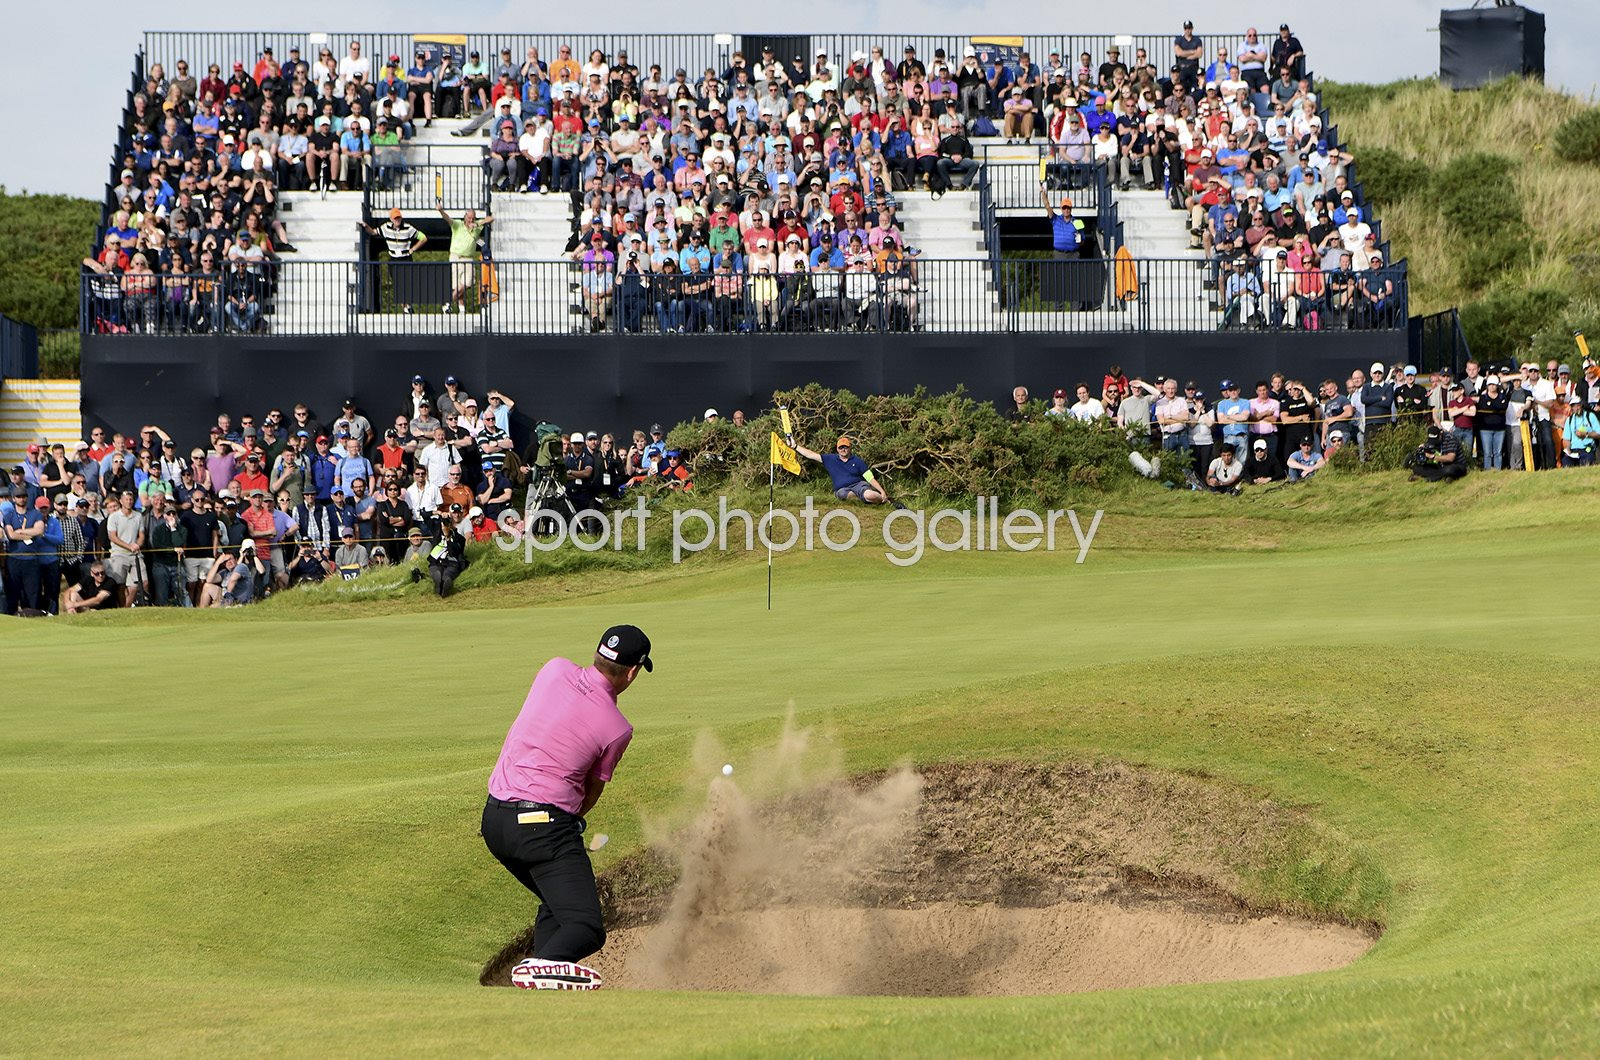 Ian Poulter British Open Royal Birkdale 2017